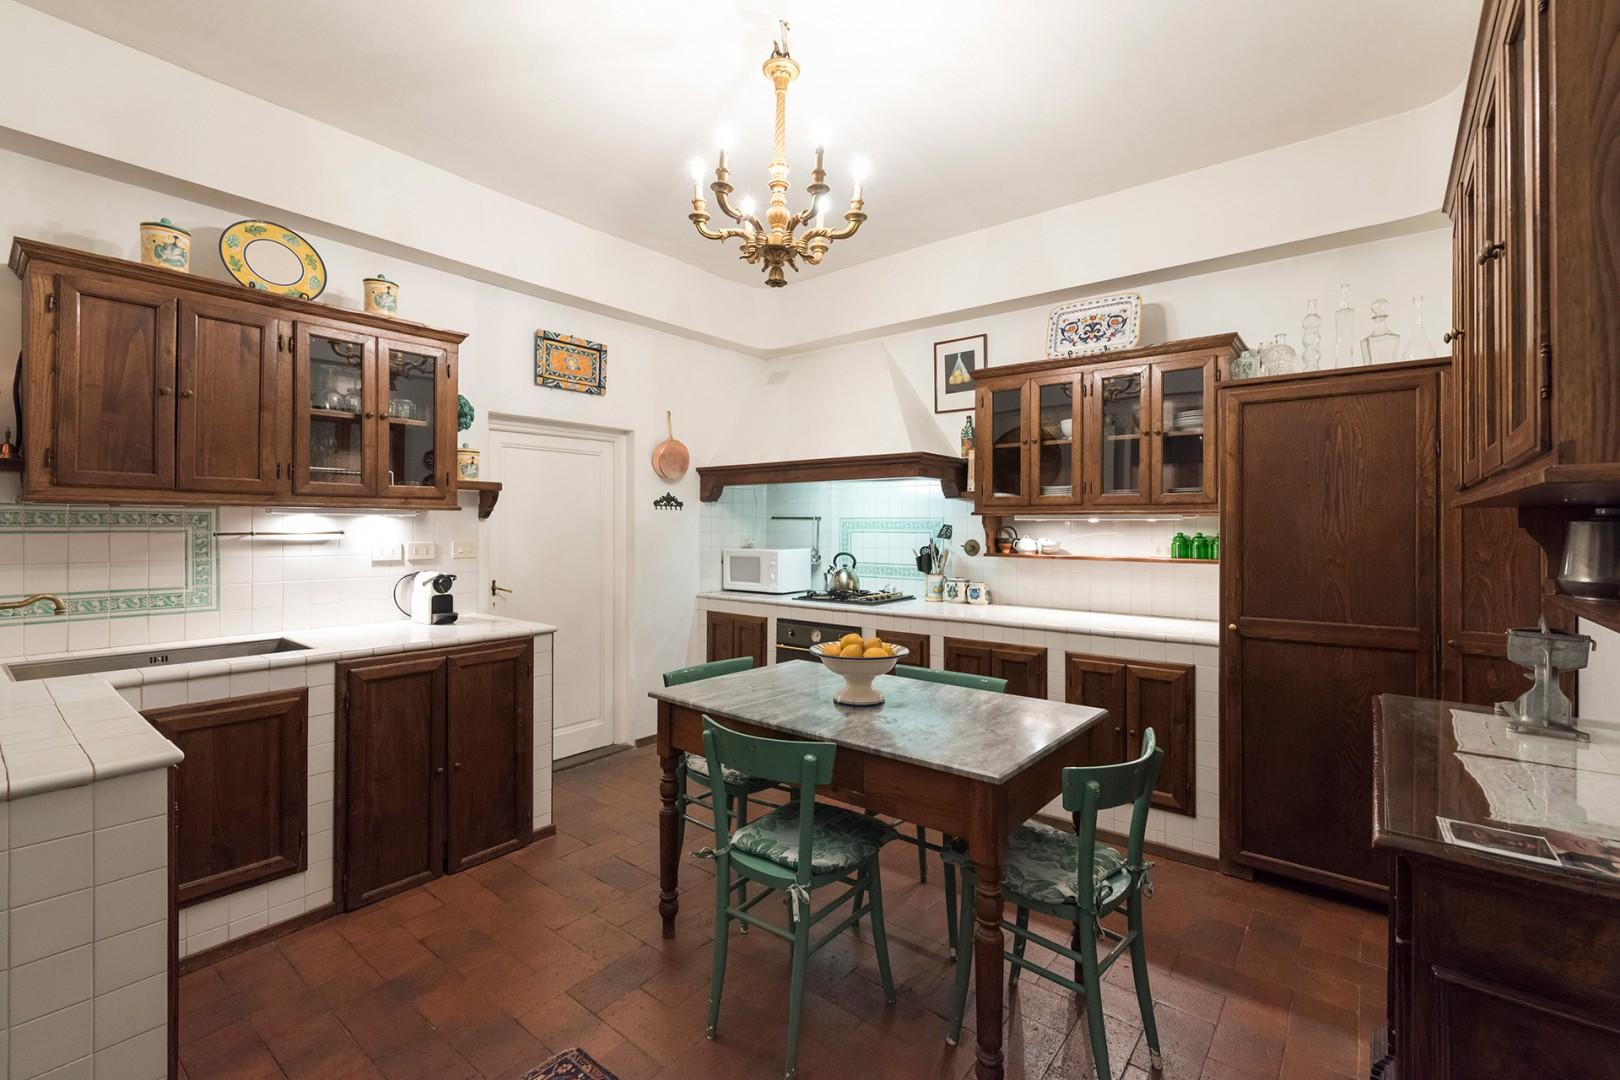 Large eat-in kitchen in the center of the apartment.